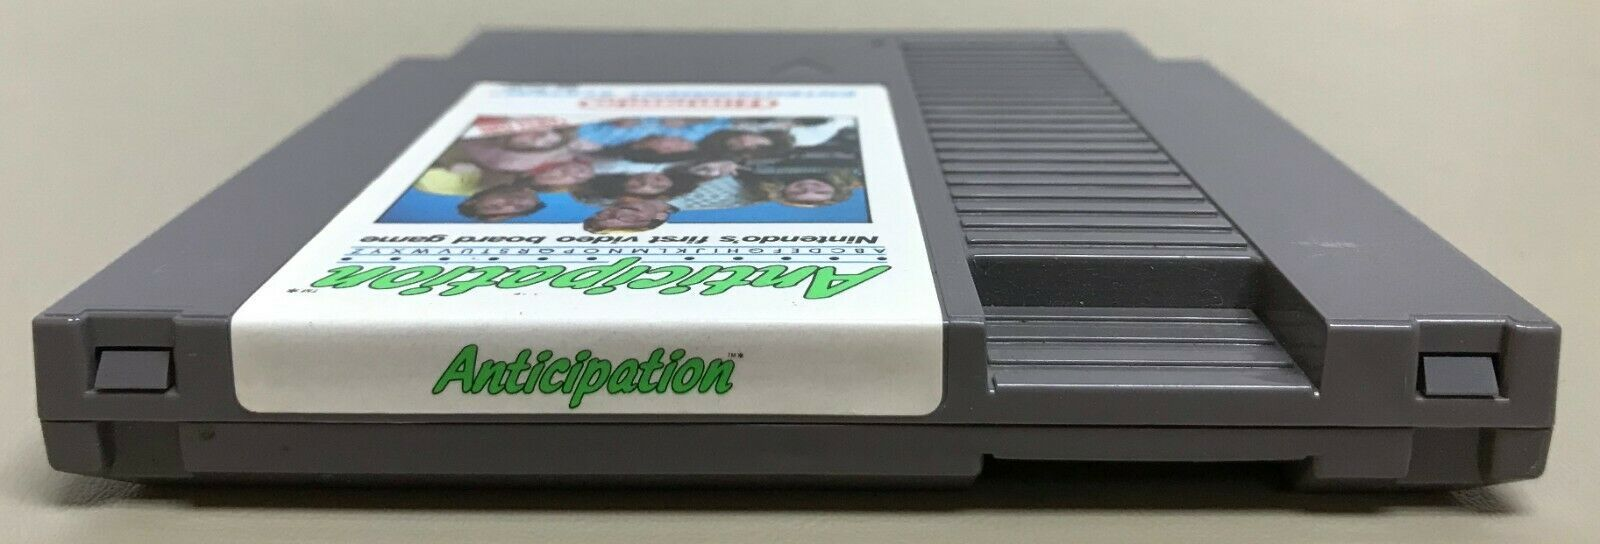 Gotcha! The Sport!, Anticipation, Fighting Golf : 3 NES Sports Game Lot Nintendo image 10